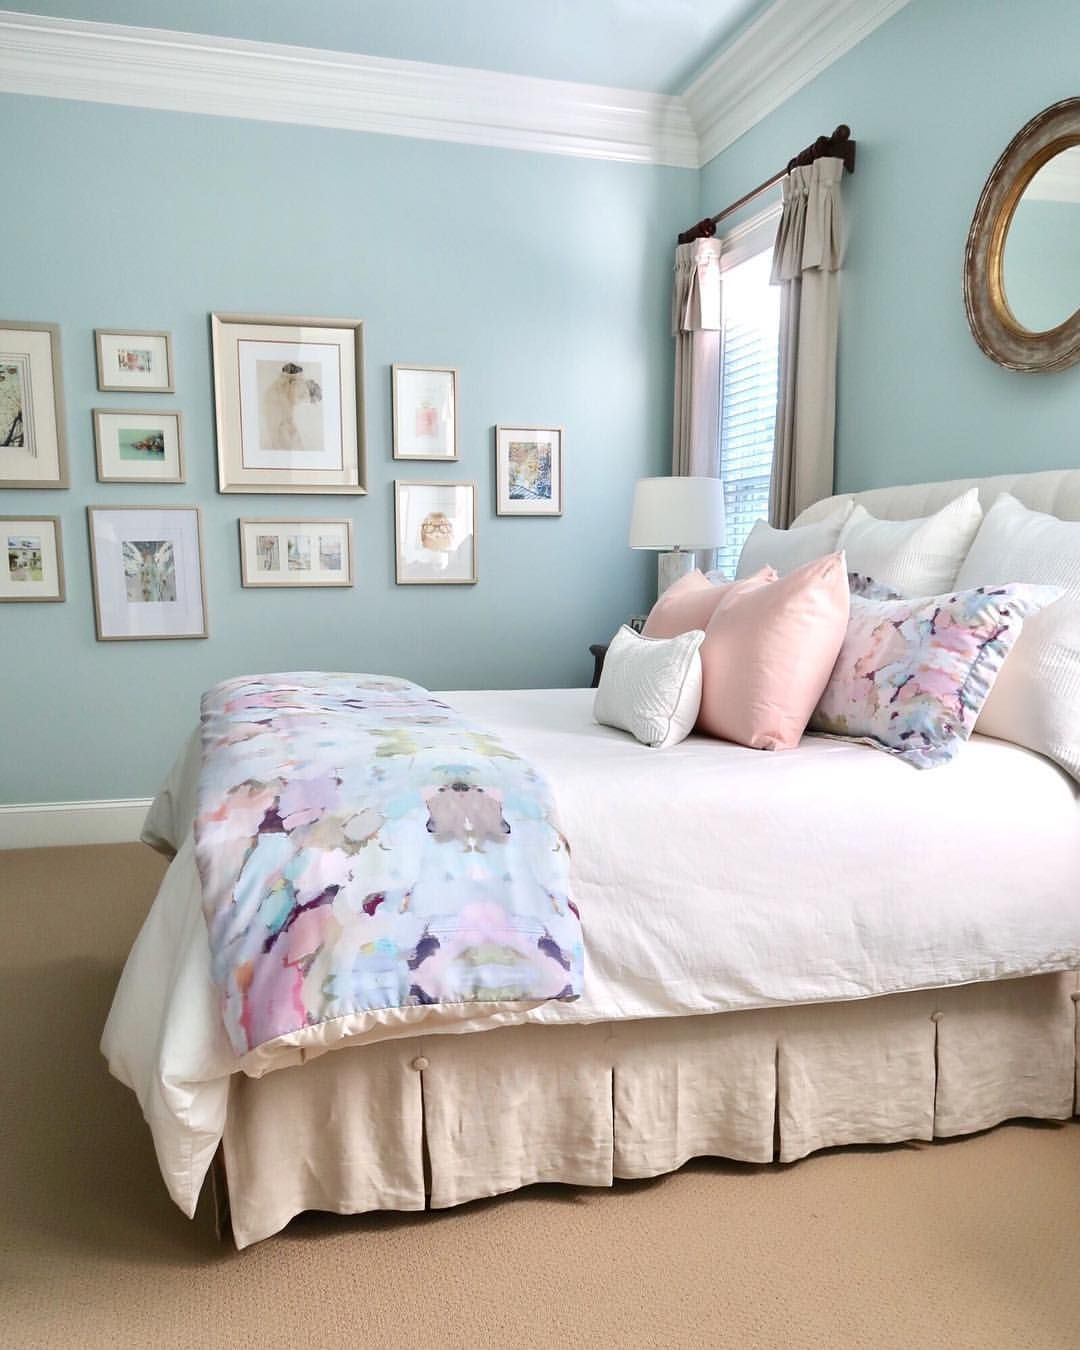 My soft and serene bedroom. Watercolor bedding, blush pink pillows